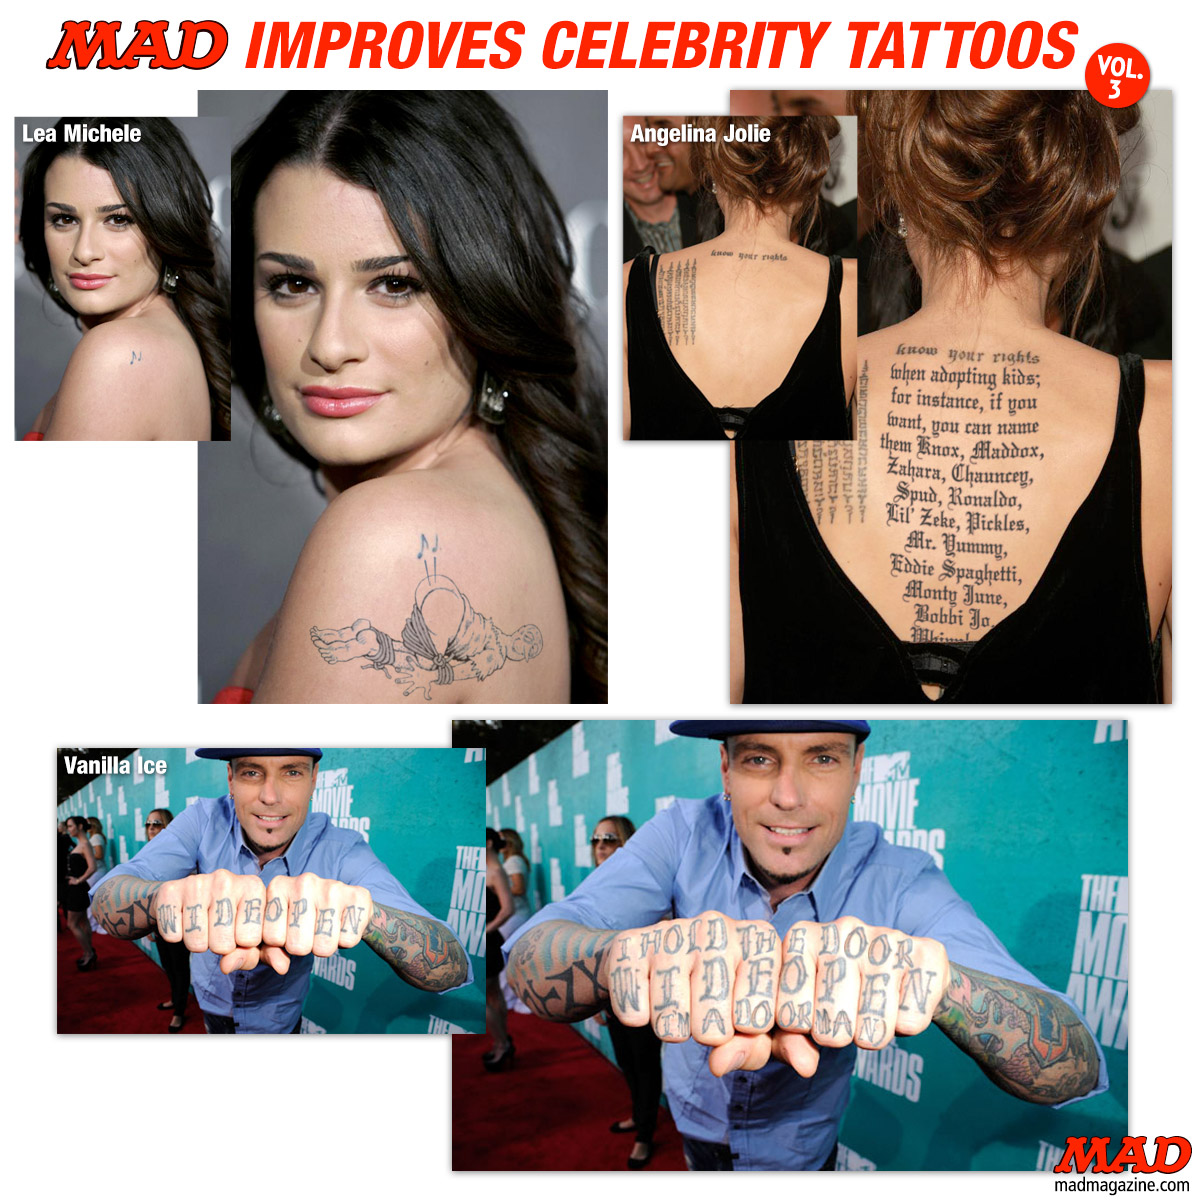 MAD Magazine MAD Improves Celebrity Tattoos, Vol. 3 Idiotical Originals, MAD Improves Celebrity Tattoos, Stars' Tattoos, Lea Michelle, Glee, Angelina Jolie, Brad Pitt, Vanilla Ice, Monkey Biscuit Superstar